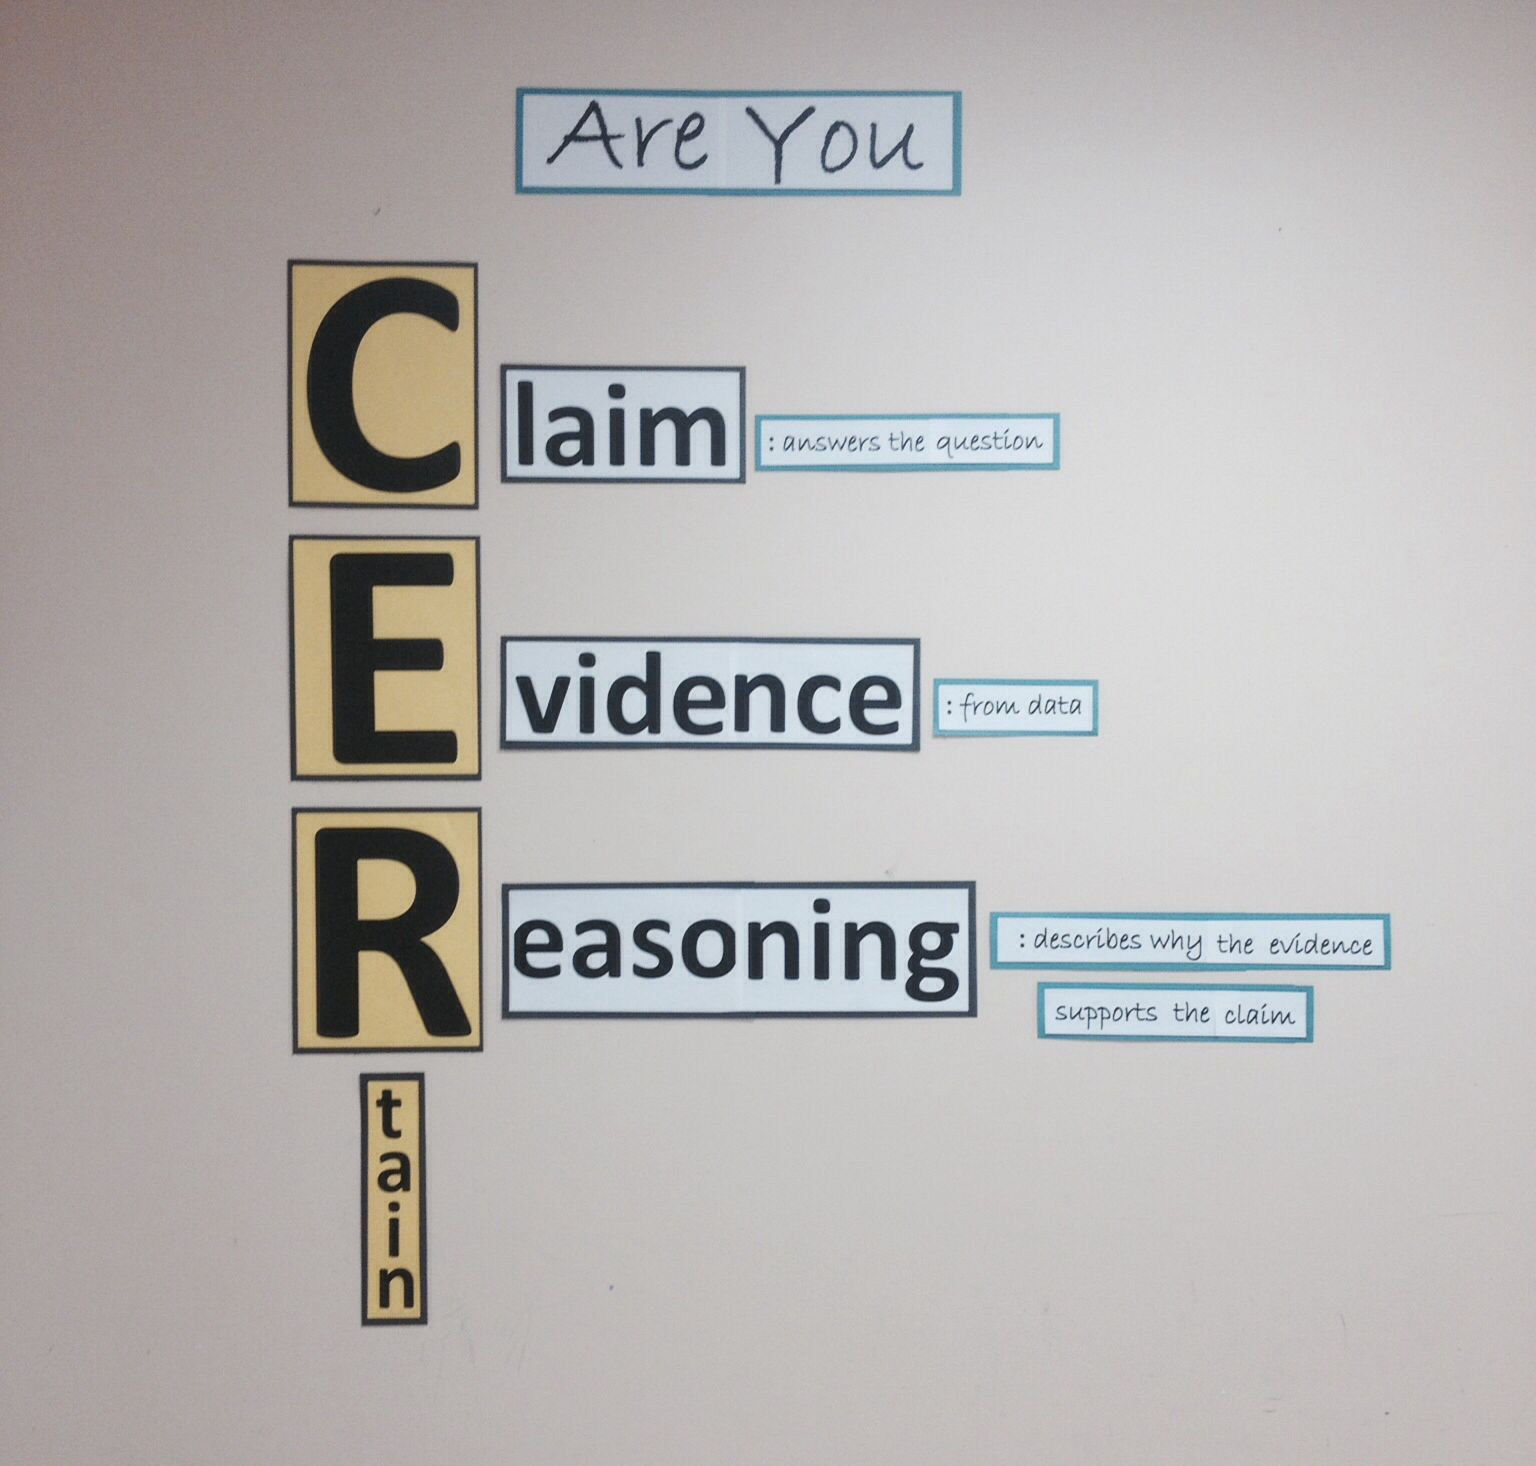 claim evidence reasoning foldable and activity for interactive iqwst cer claim evidence reasoning display in classroom